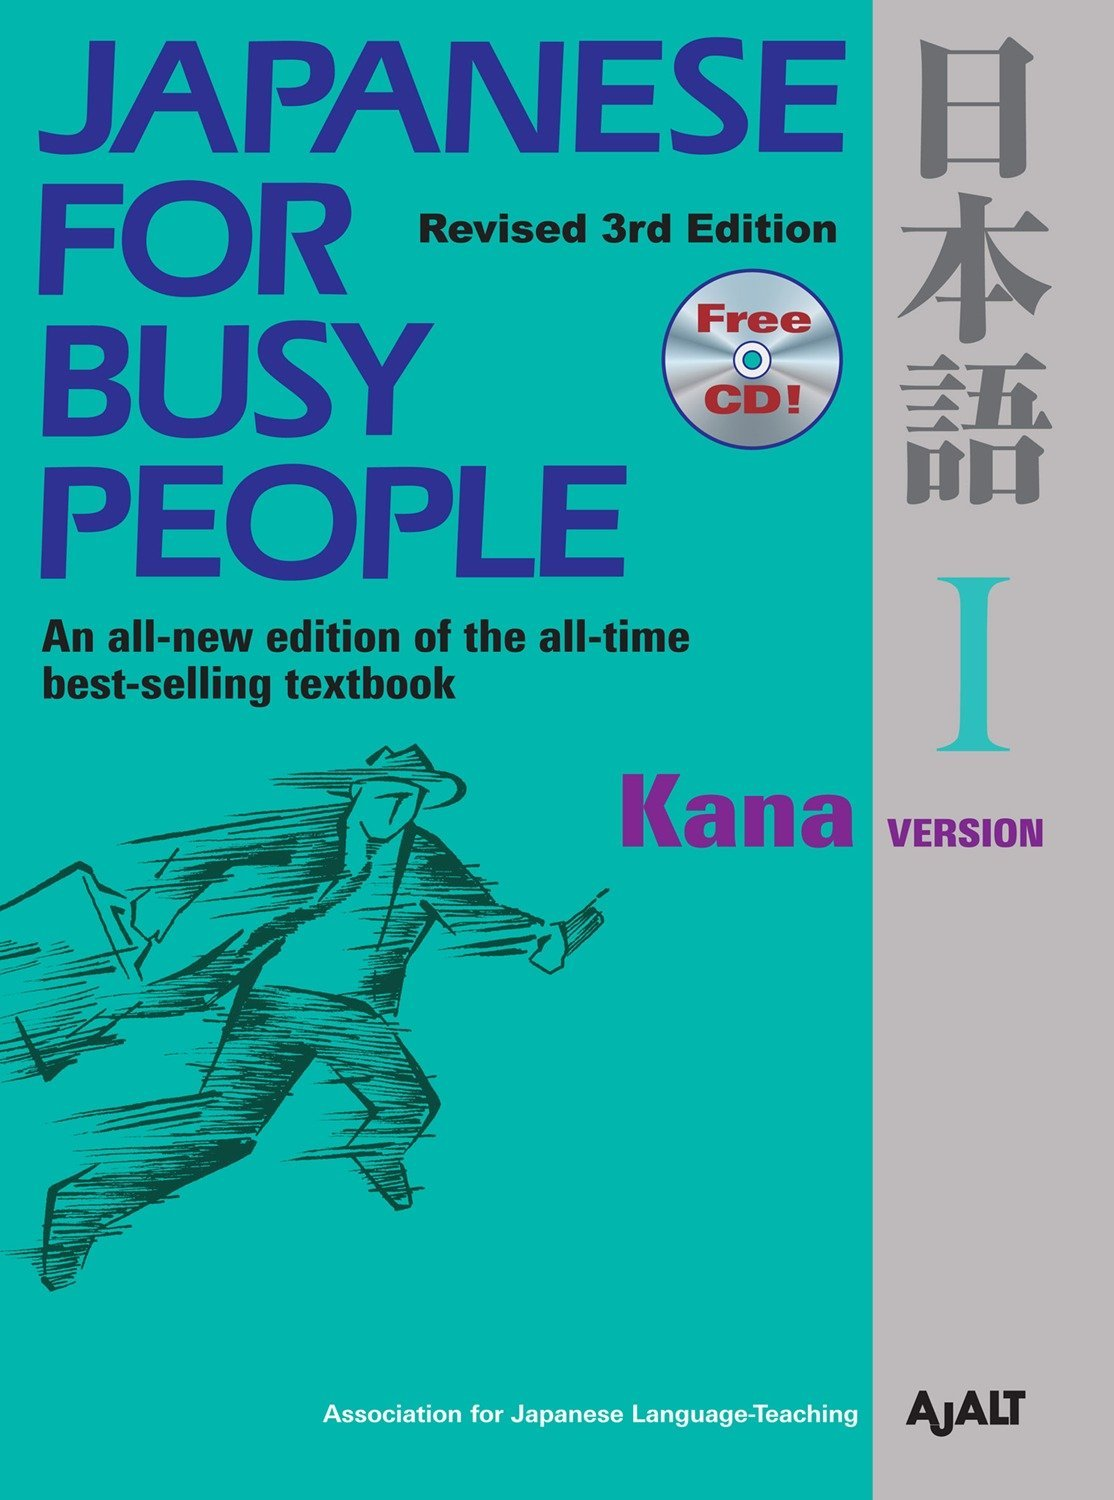 Japanese for Busy People I: Kana Version (Japanese for Busy People Series, Band 2)